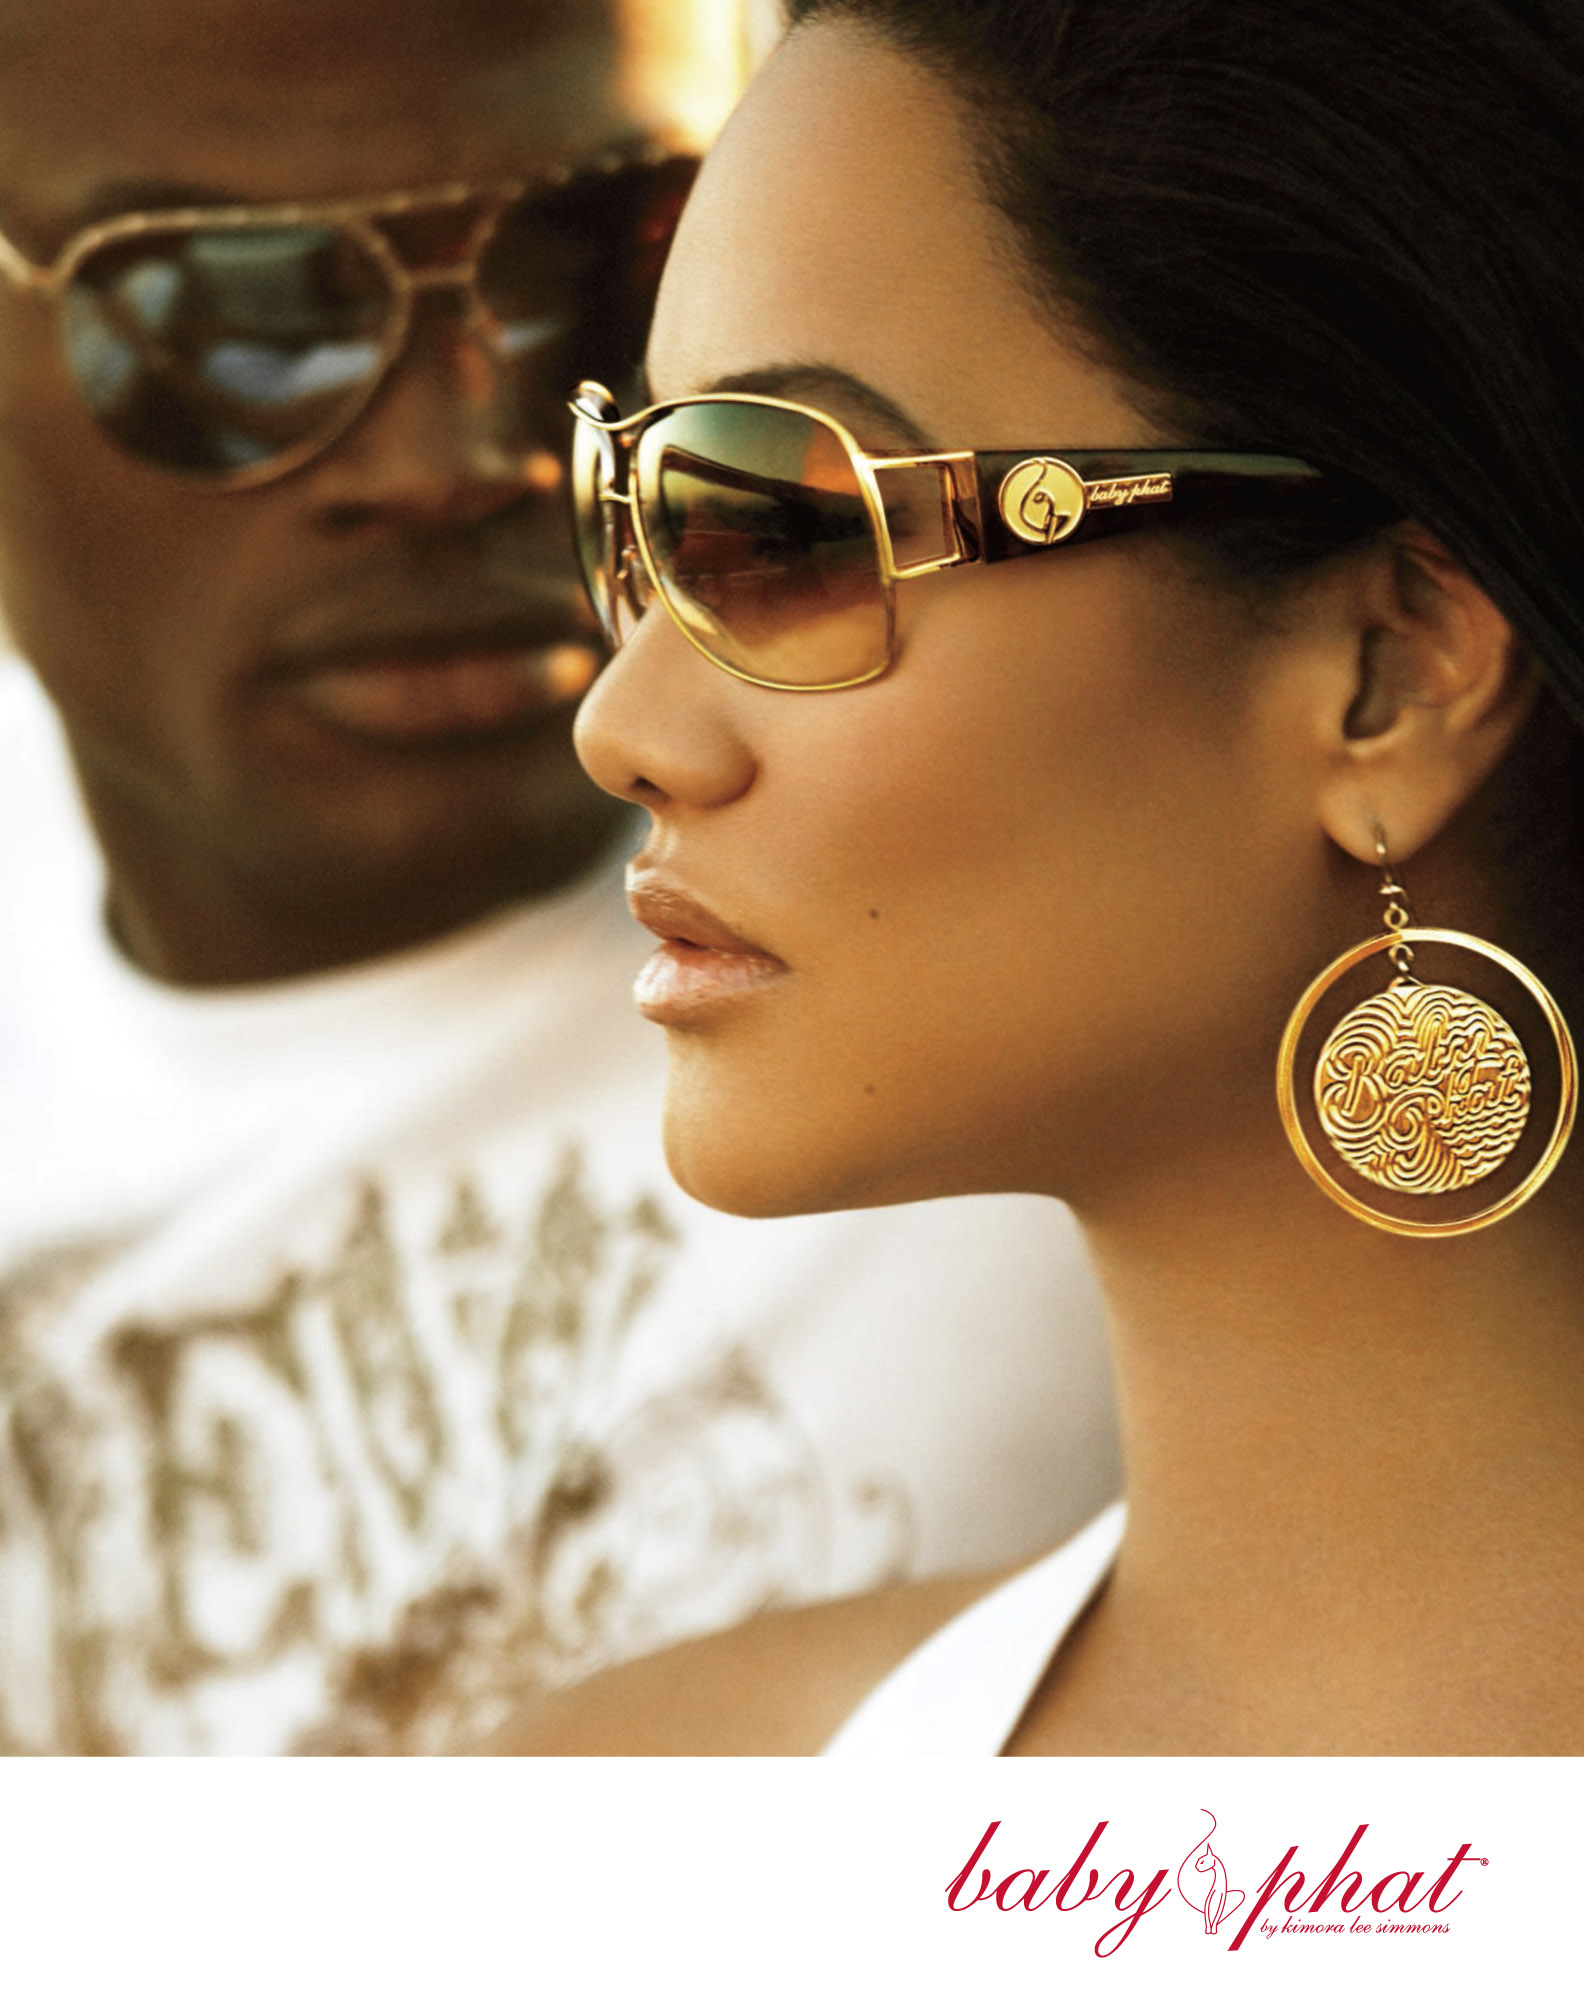 Stay Connected with Baby Phat on Twitter, Facebook, YouTube and Flickr